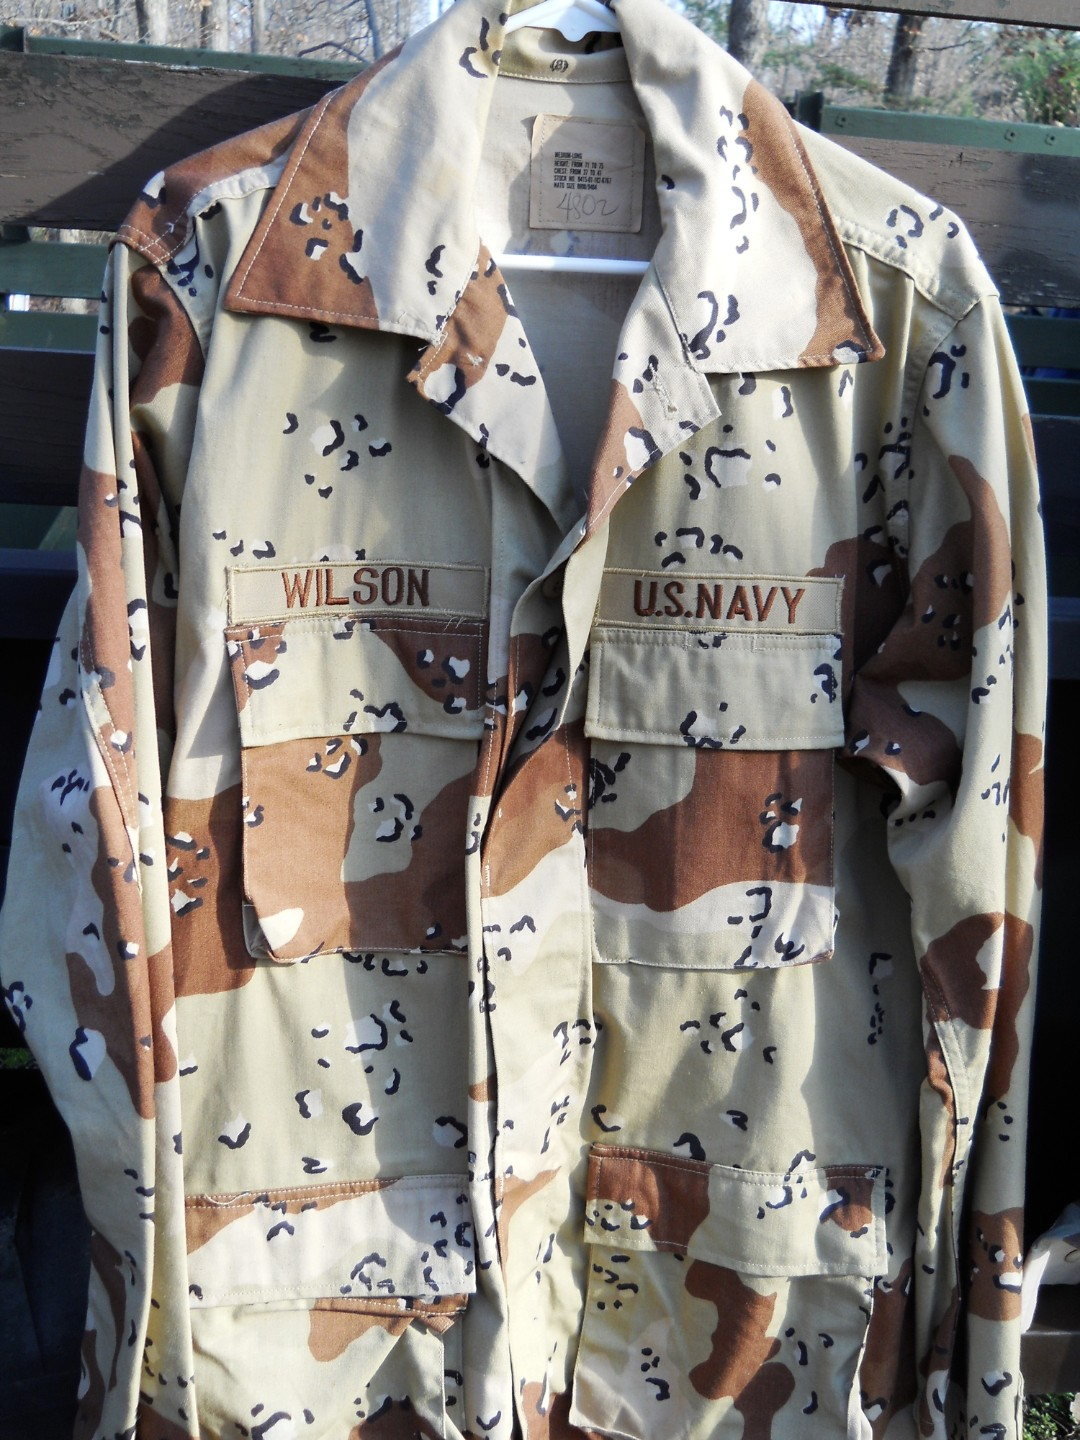 assorted military uniforms army navy bdu s jackets $ 10 ea